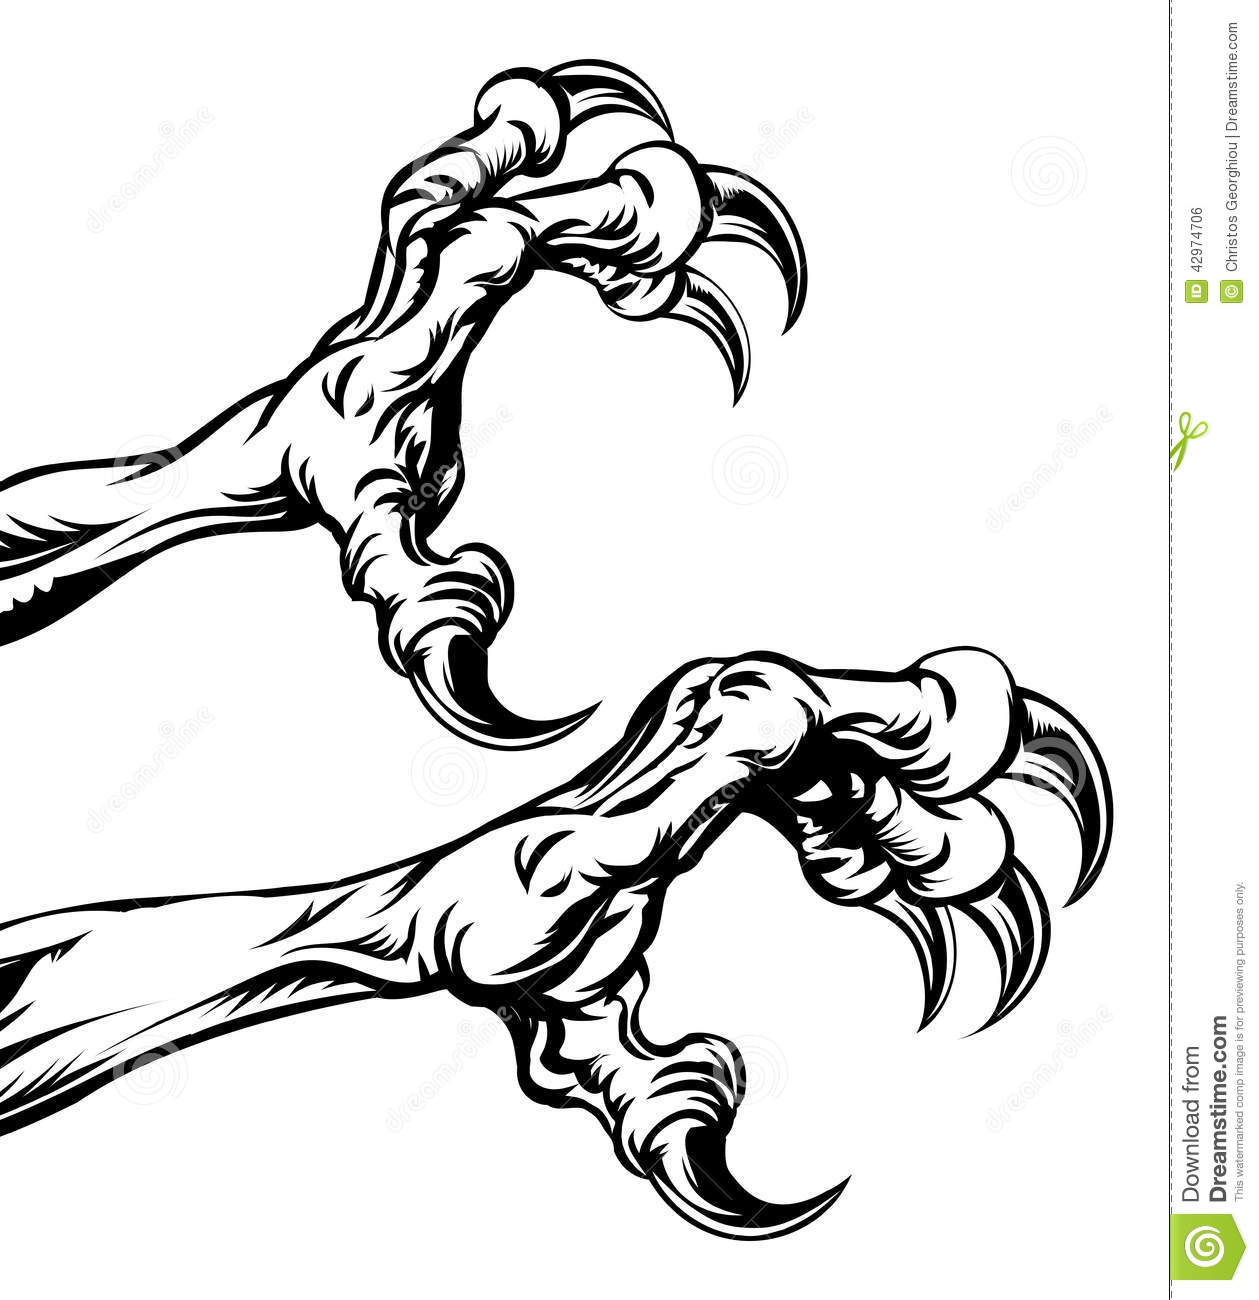 An illustration of eagle or monster animal claws or talons.